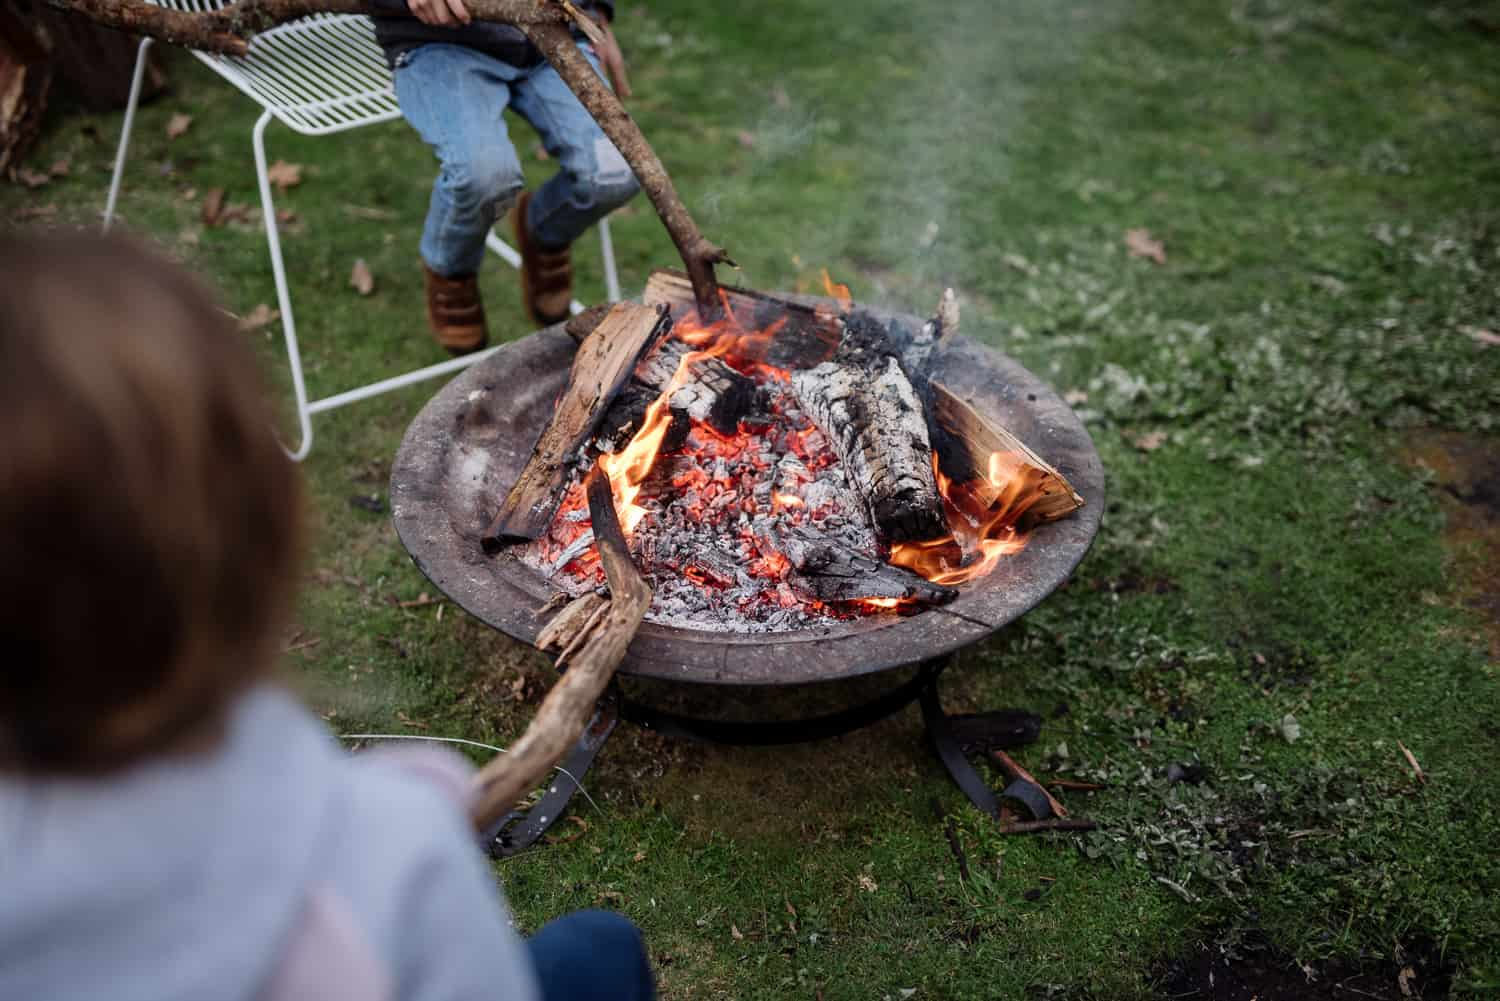 children playing around an open fire